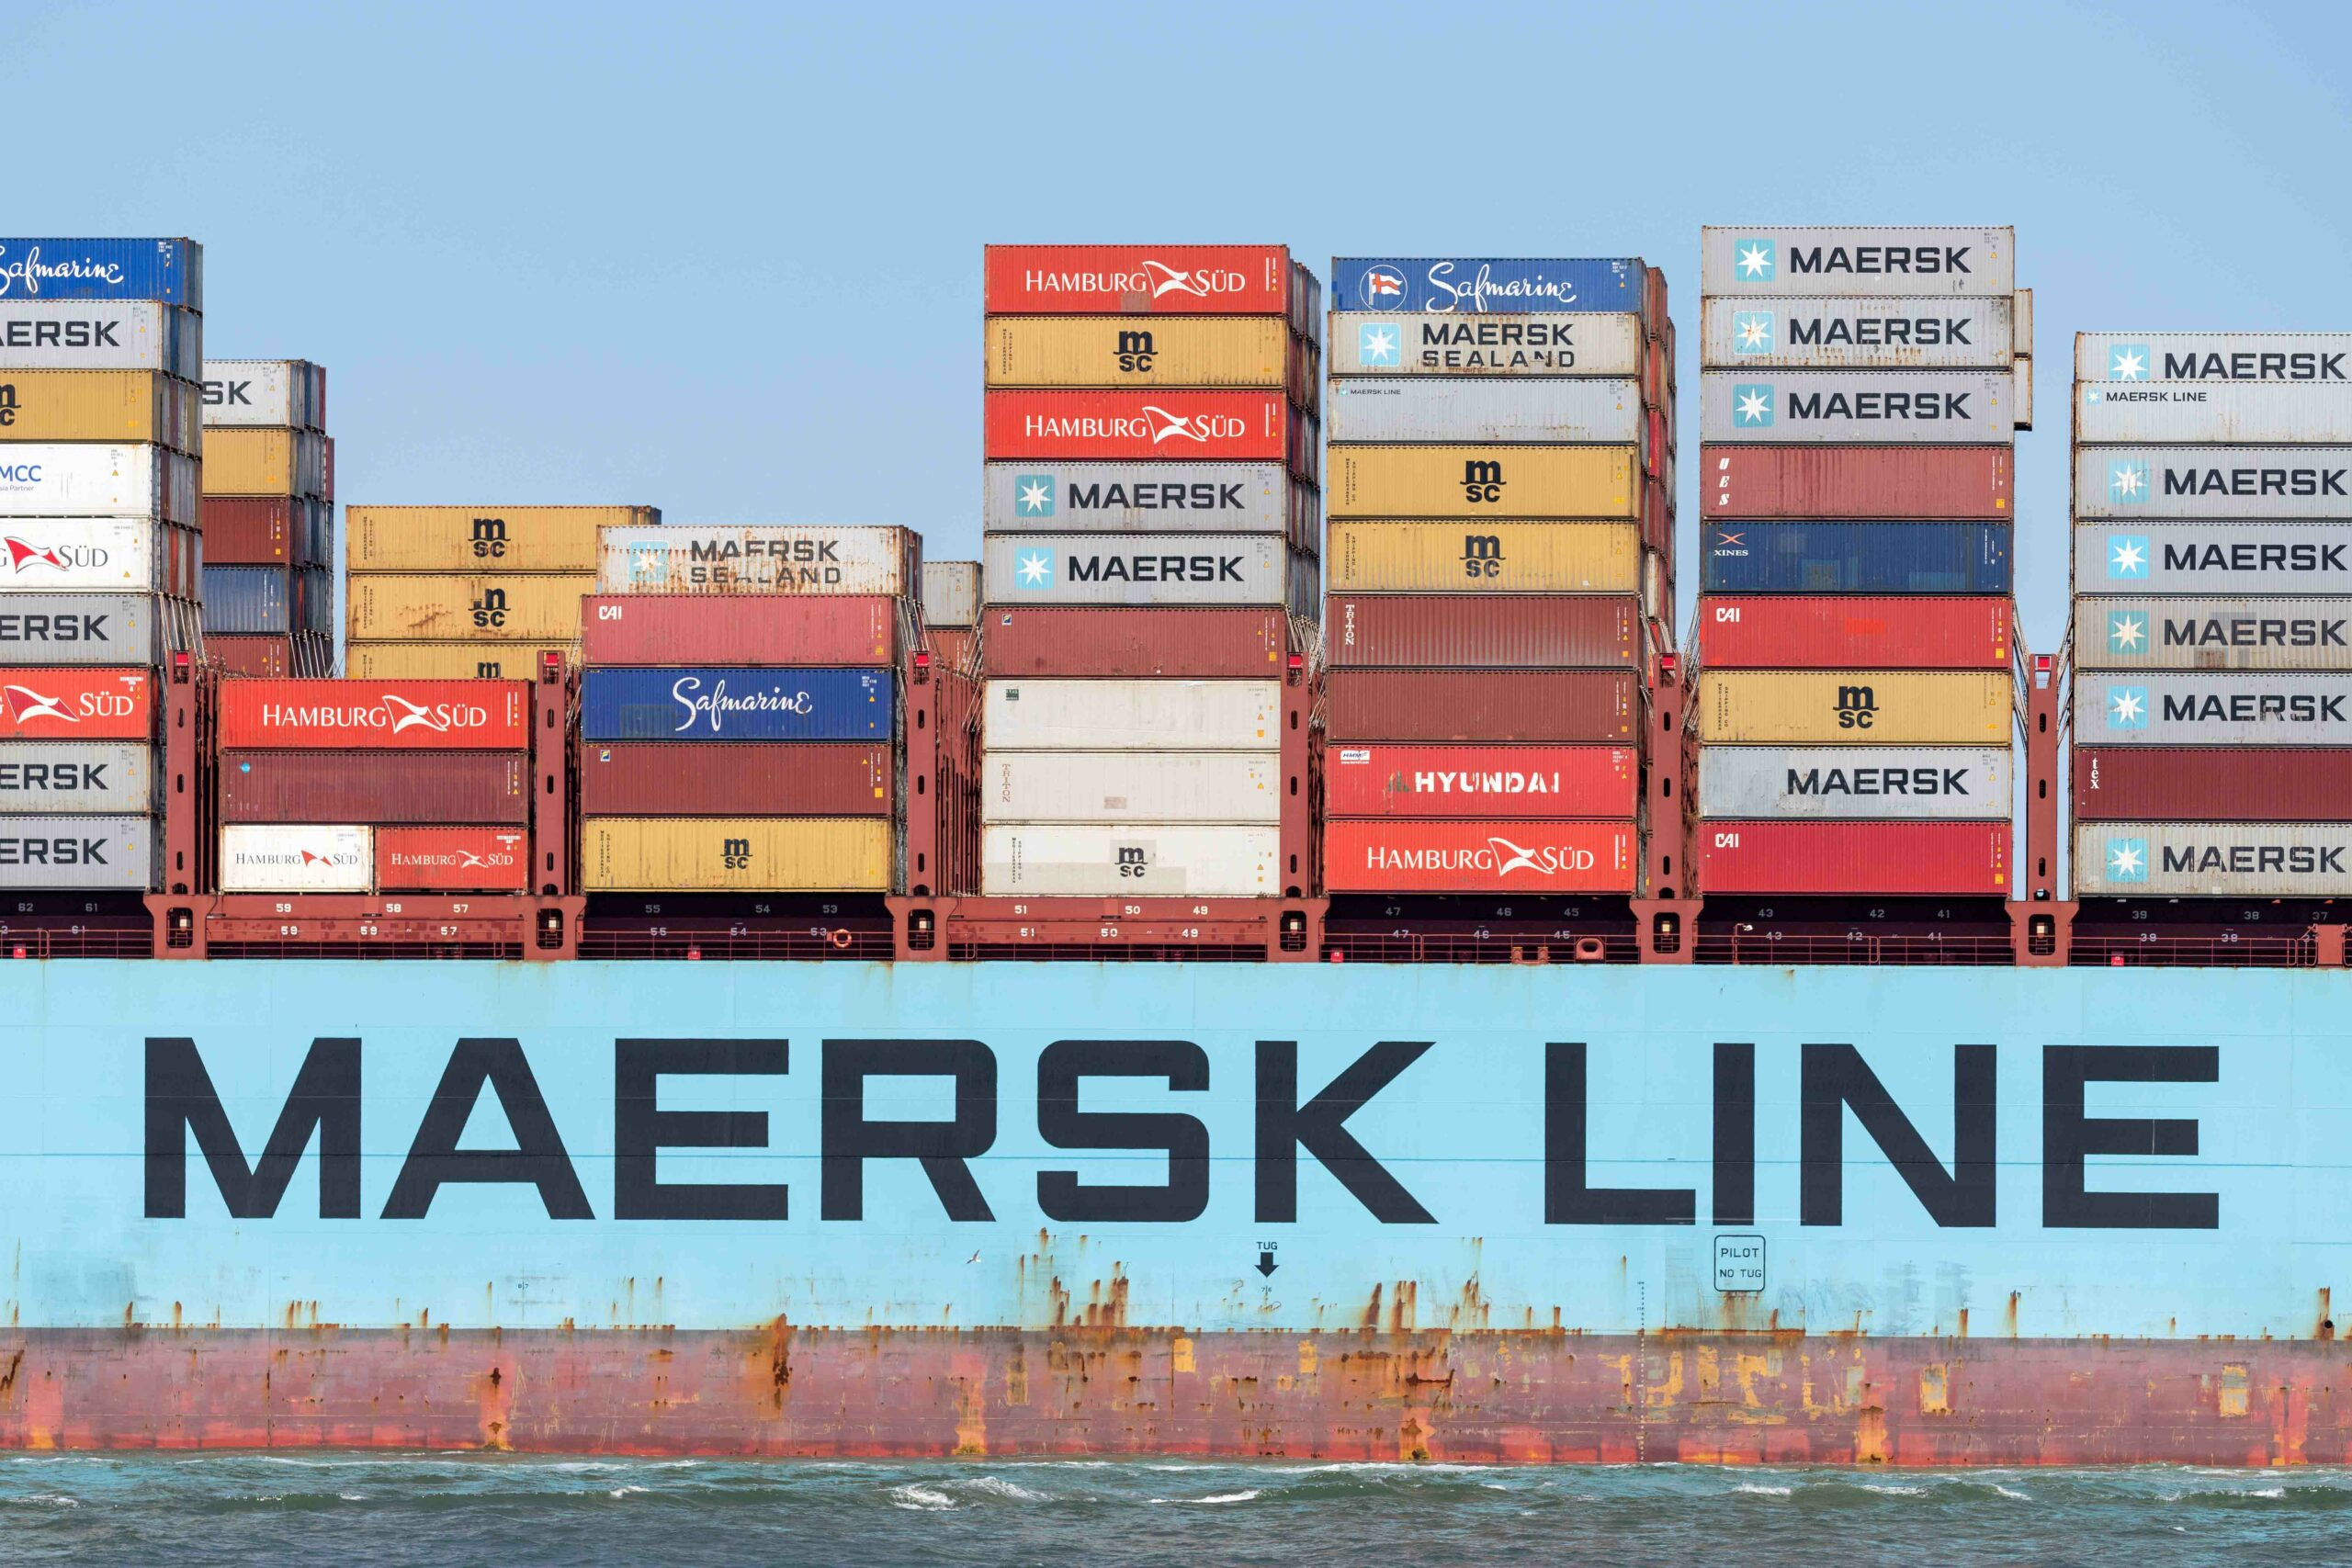 'Maersk Emerald' Briefly Grounds in Suez Canal, Scary Flashbacks of Ever Given Apollo Cargo Alliance